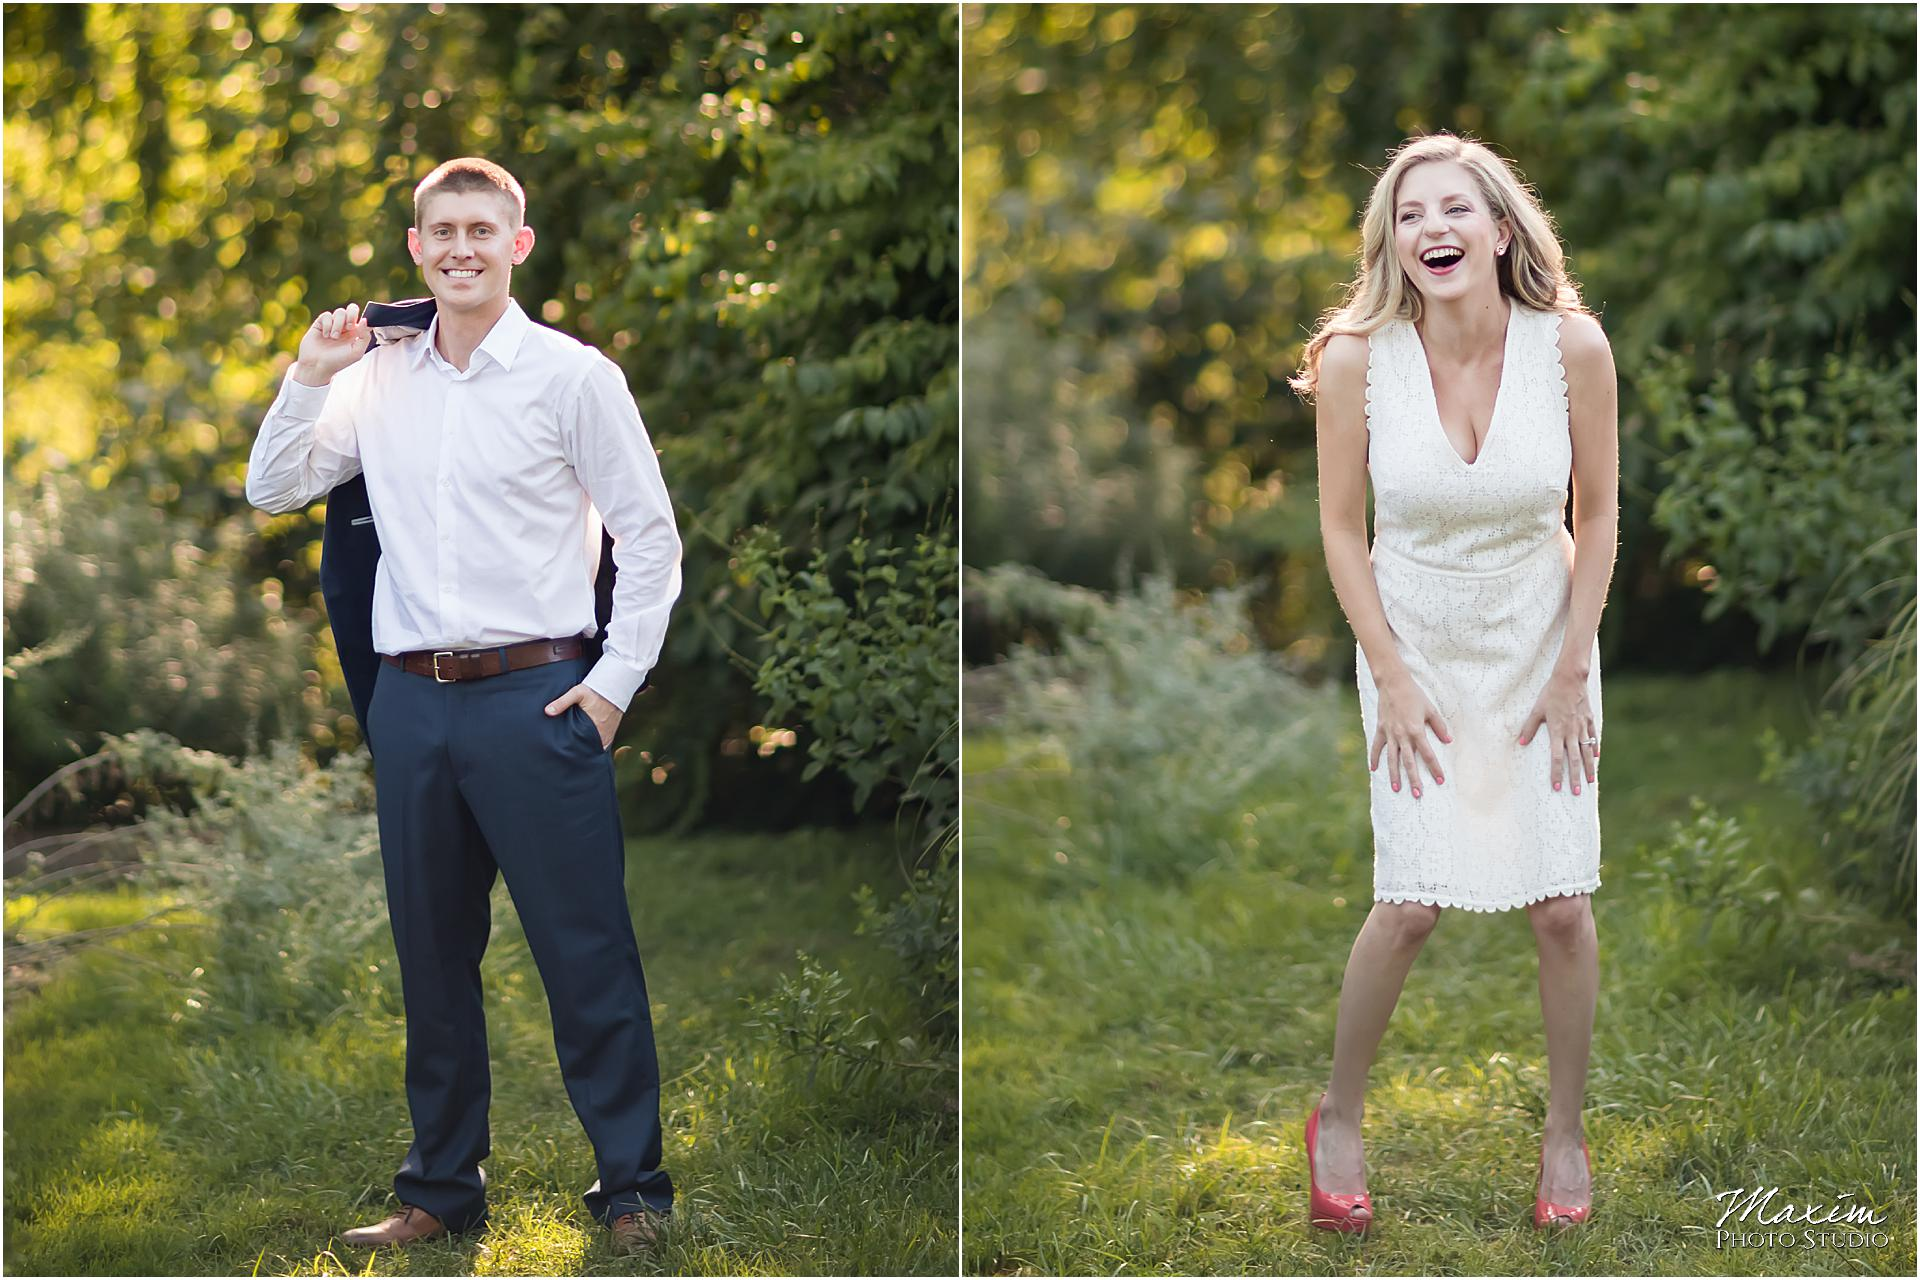 Ault Park Cincinnati, Engagement Photography, fun engagement